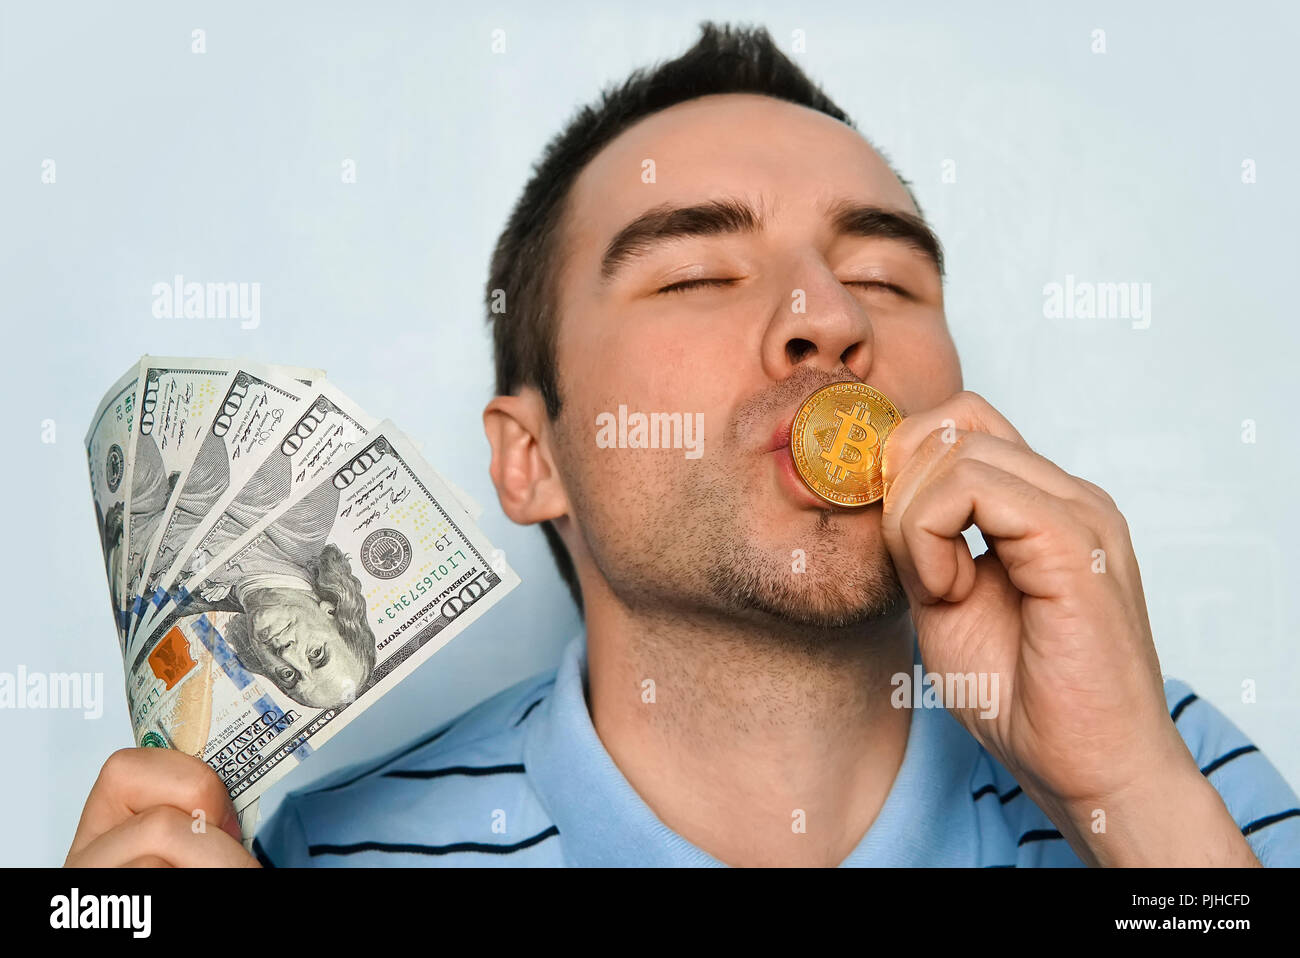 a man with a gold coin and dollars. Bitcoin curreny on united states hundred dollar bill with concept of earning money on bank spending. Miner earned  - Stock Image